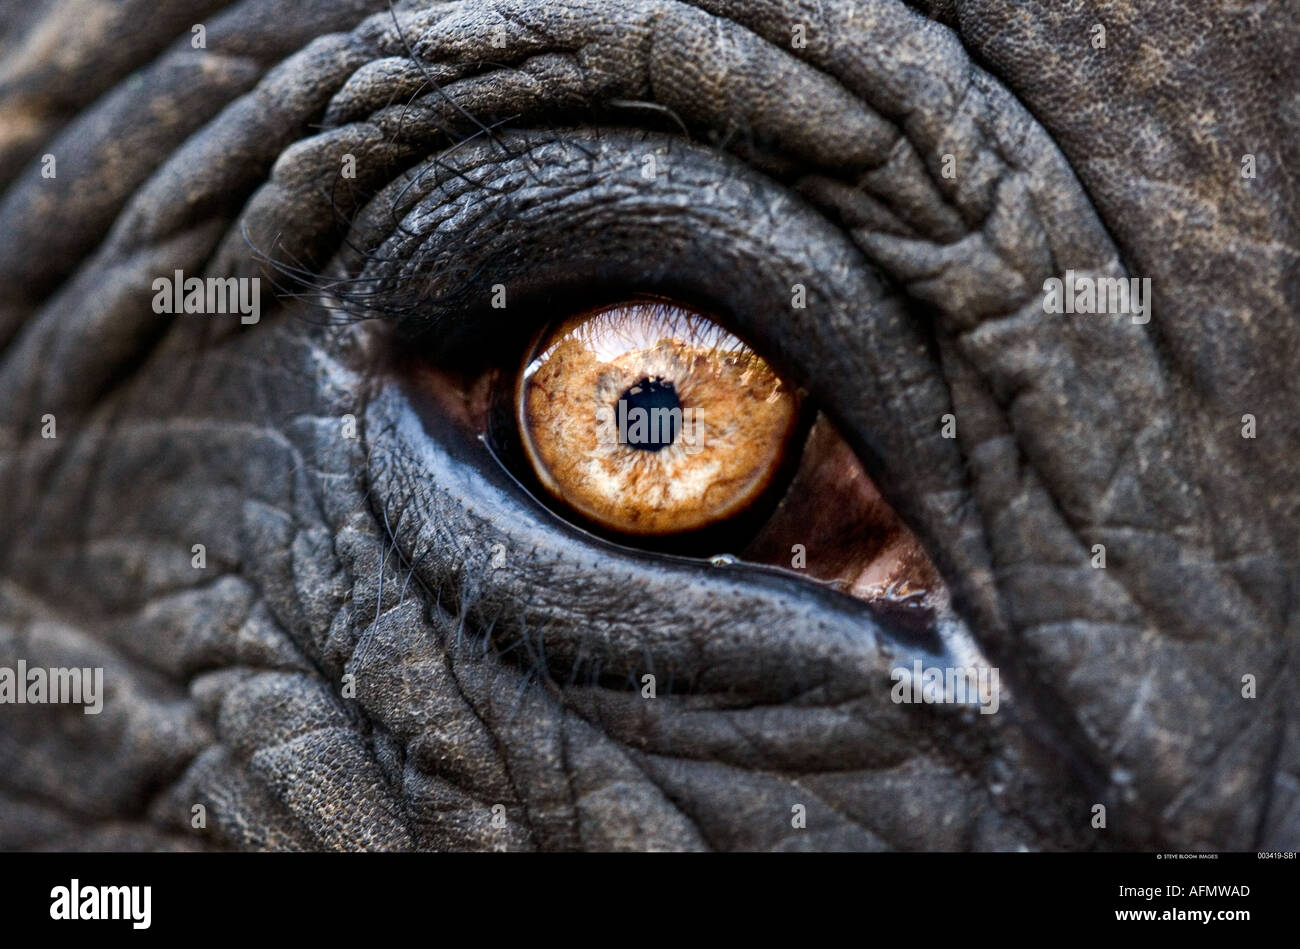 Close up de l'oeil d'un éléphant indien Jaipur en Inde Photo Stock